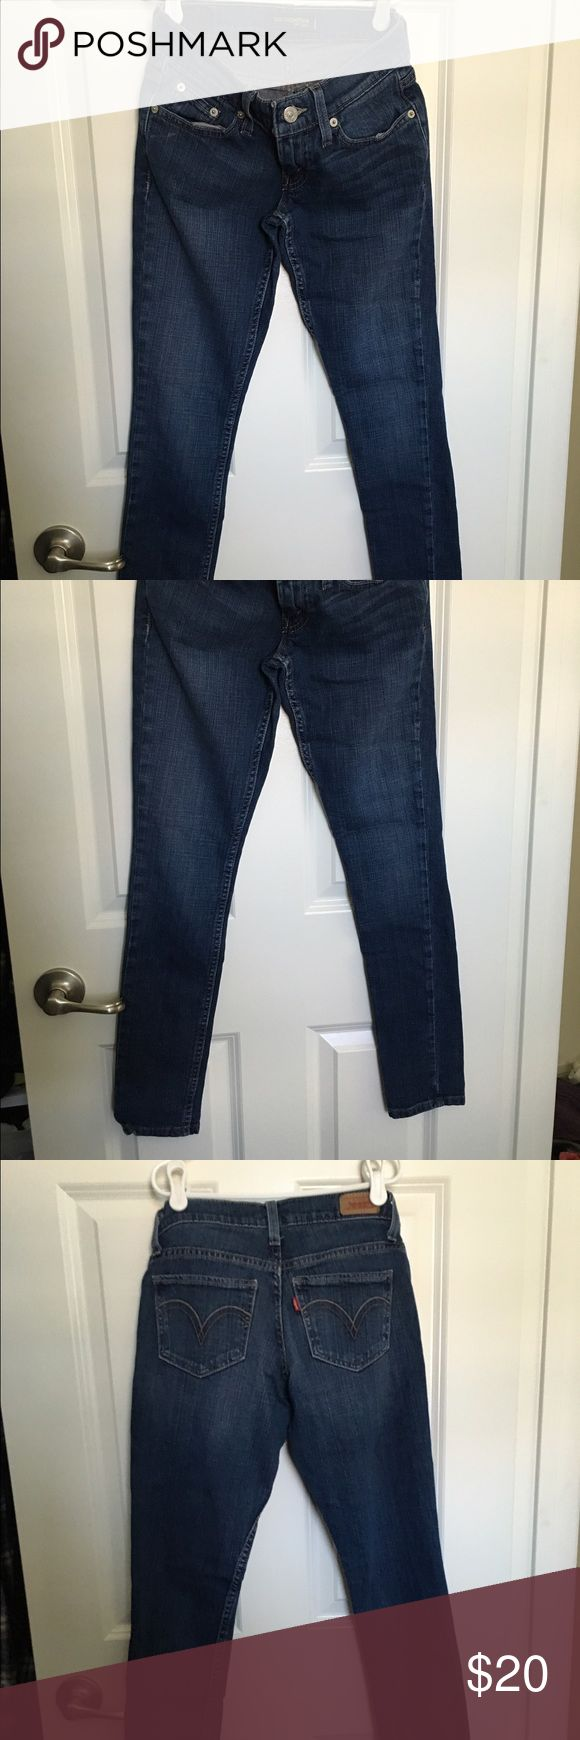 |Levi's| Women's Skinny Jeans In great condition! Light worn. Levi's Jeans Skinny